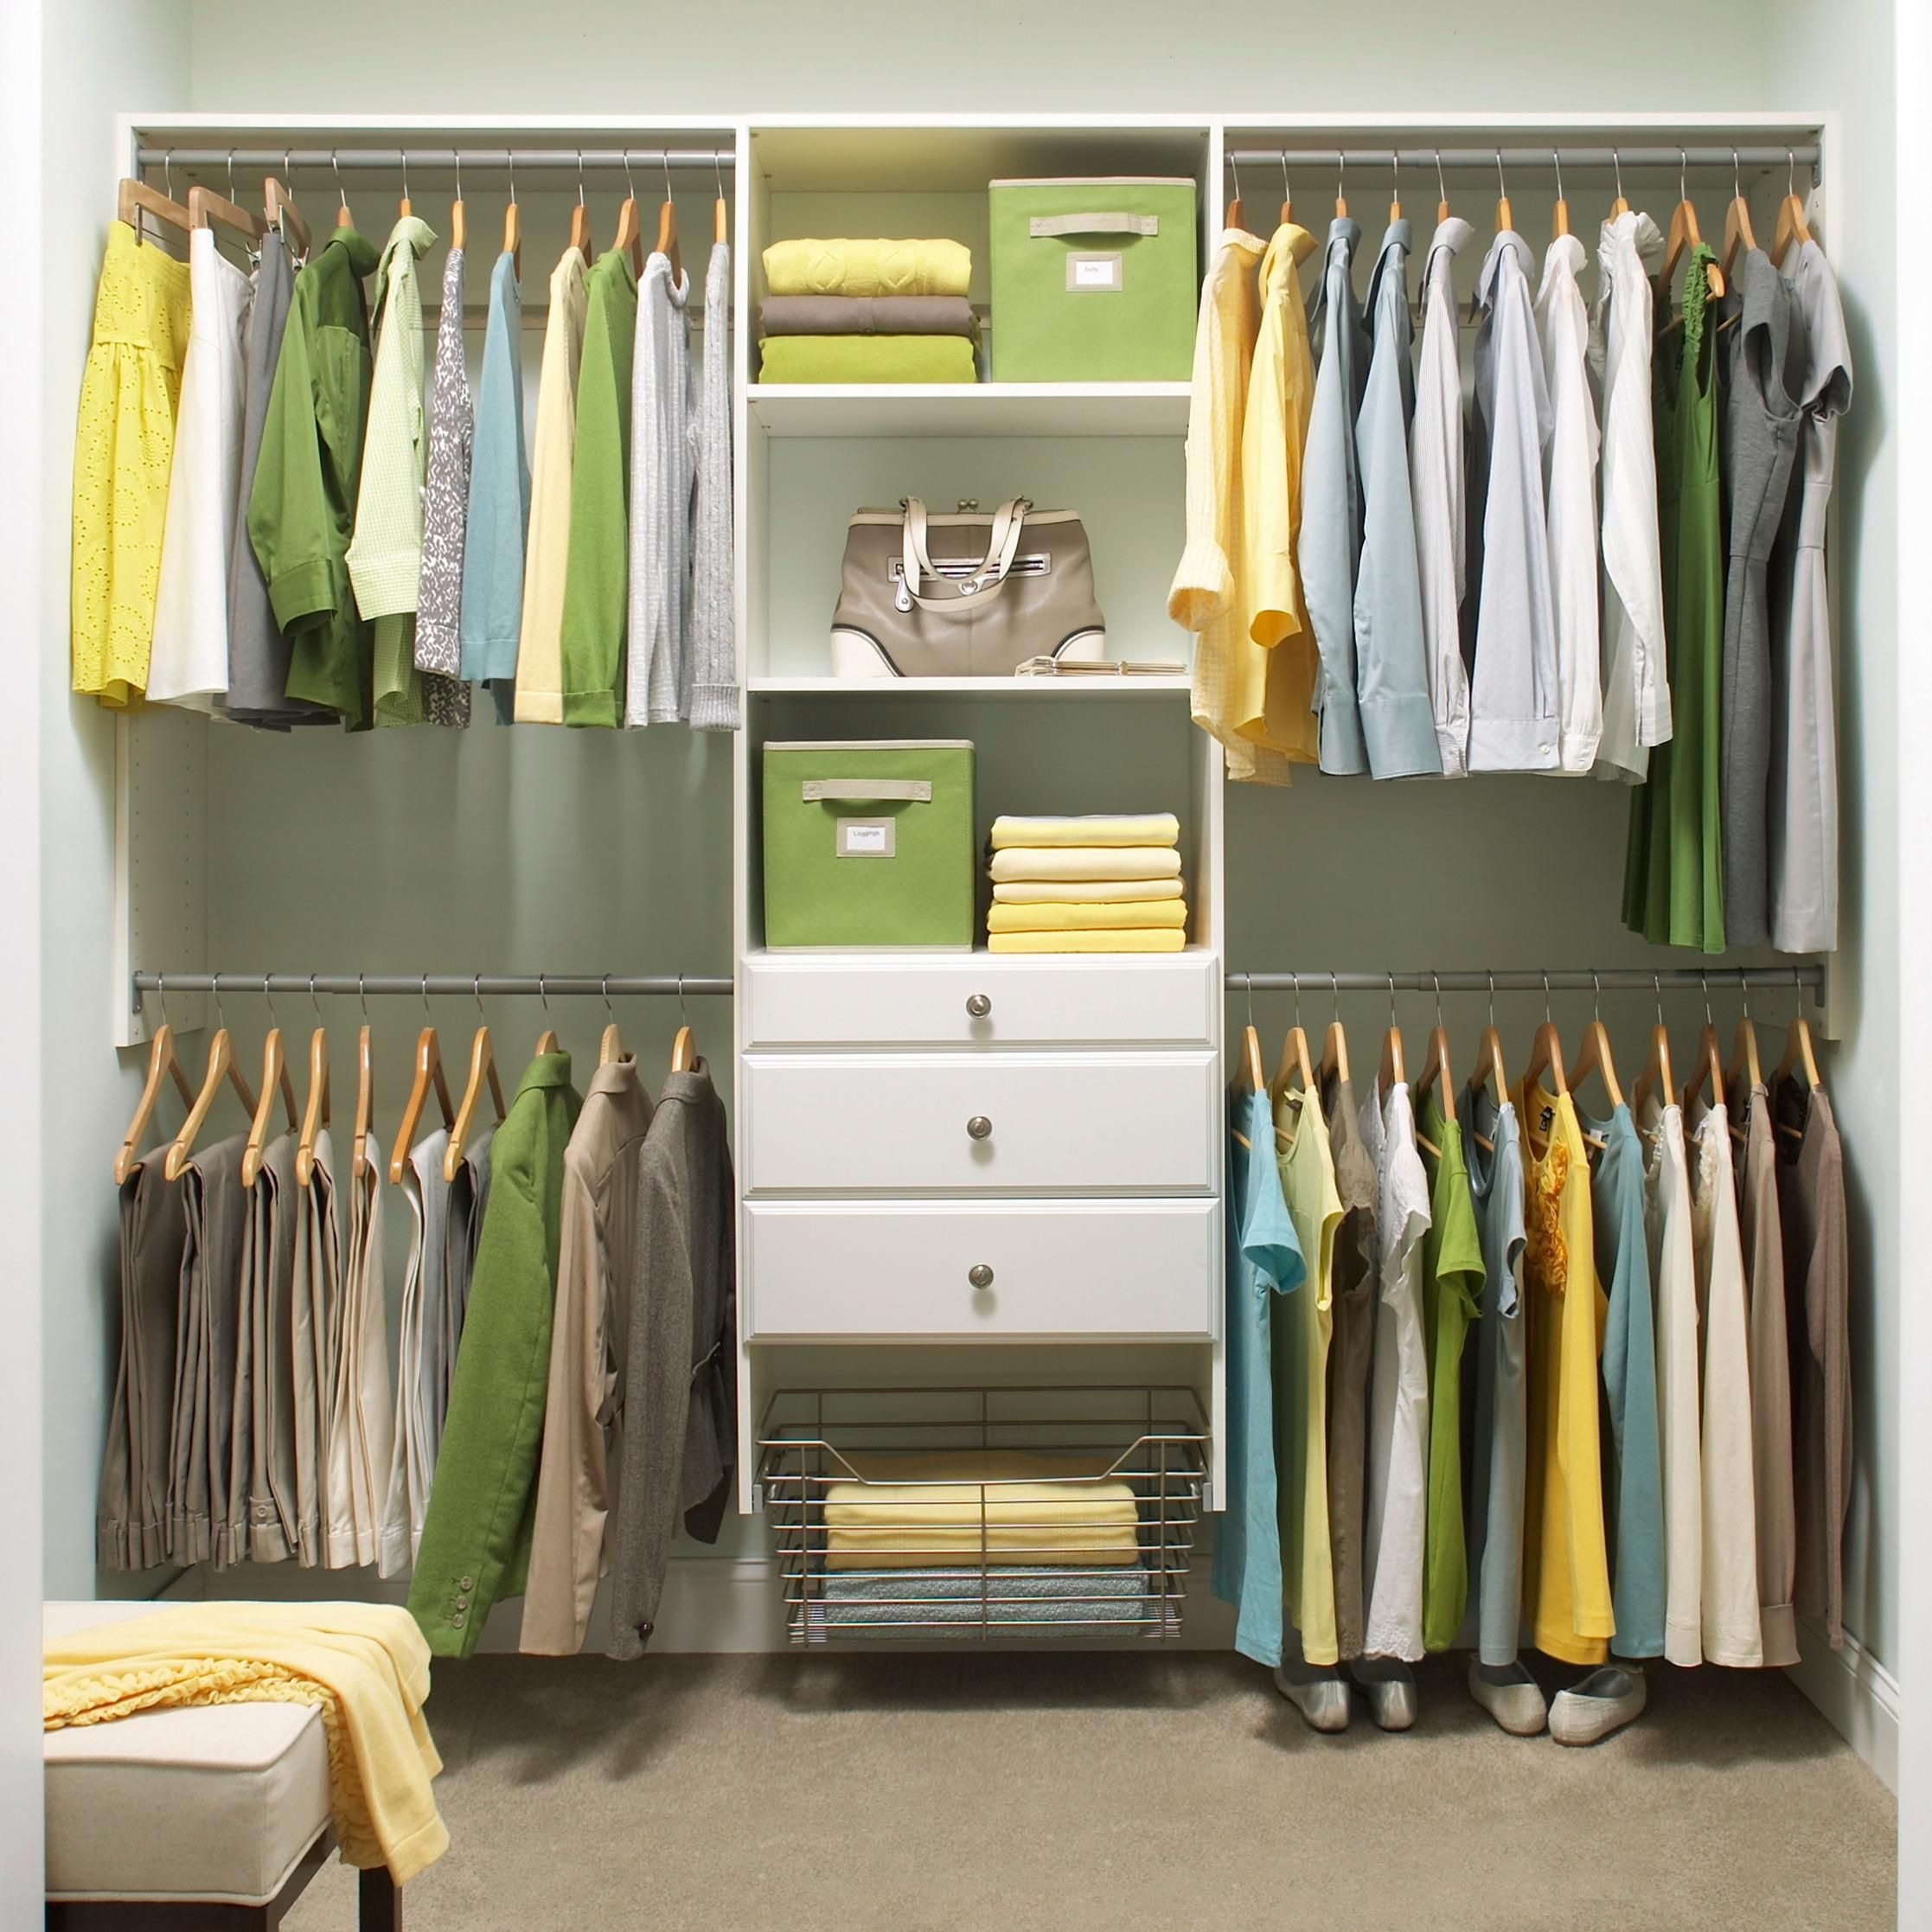 4 Ways To Think Outside The Closet Home Depot Closet Organizer Home Depot Closet System Home Depot Closet